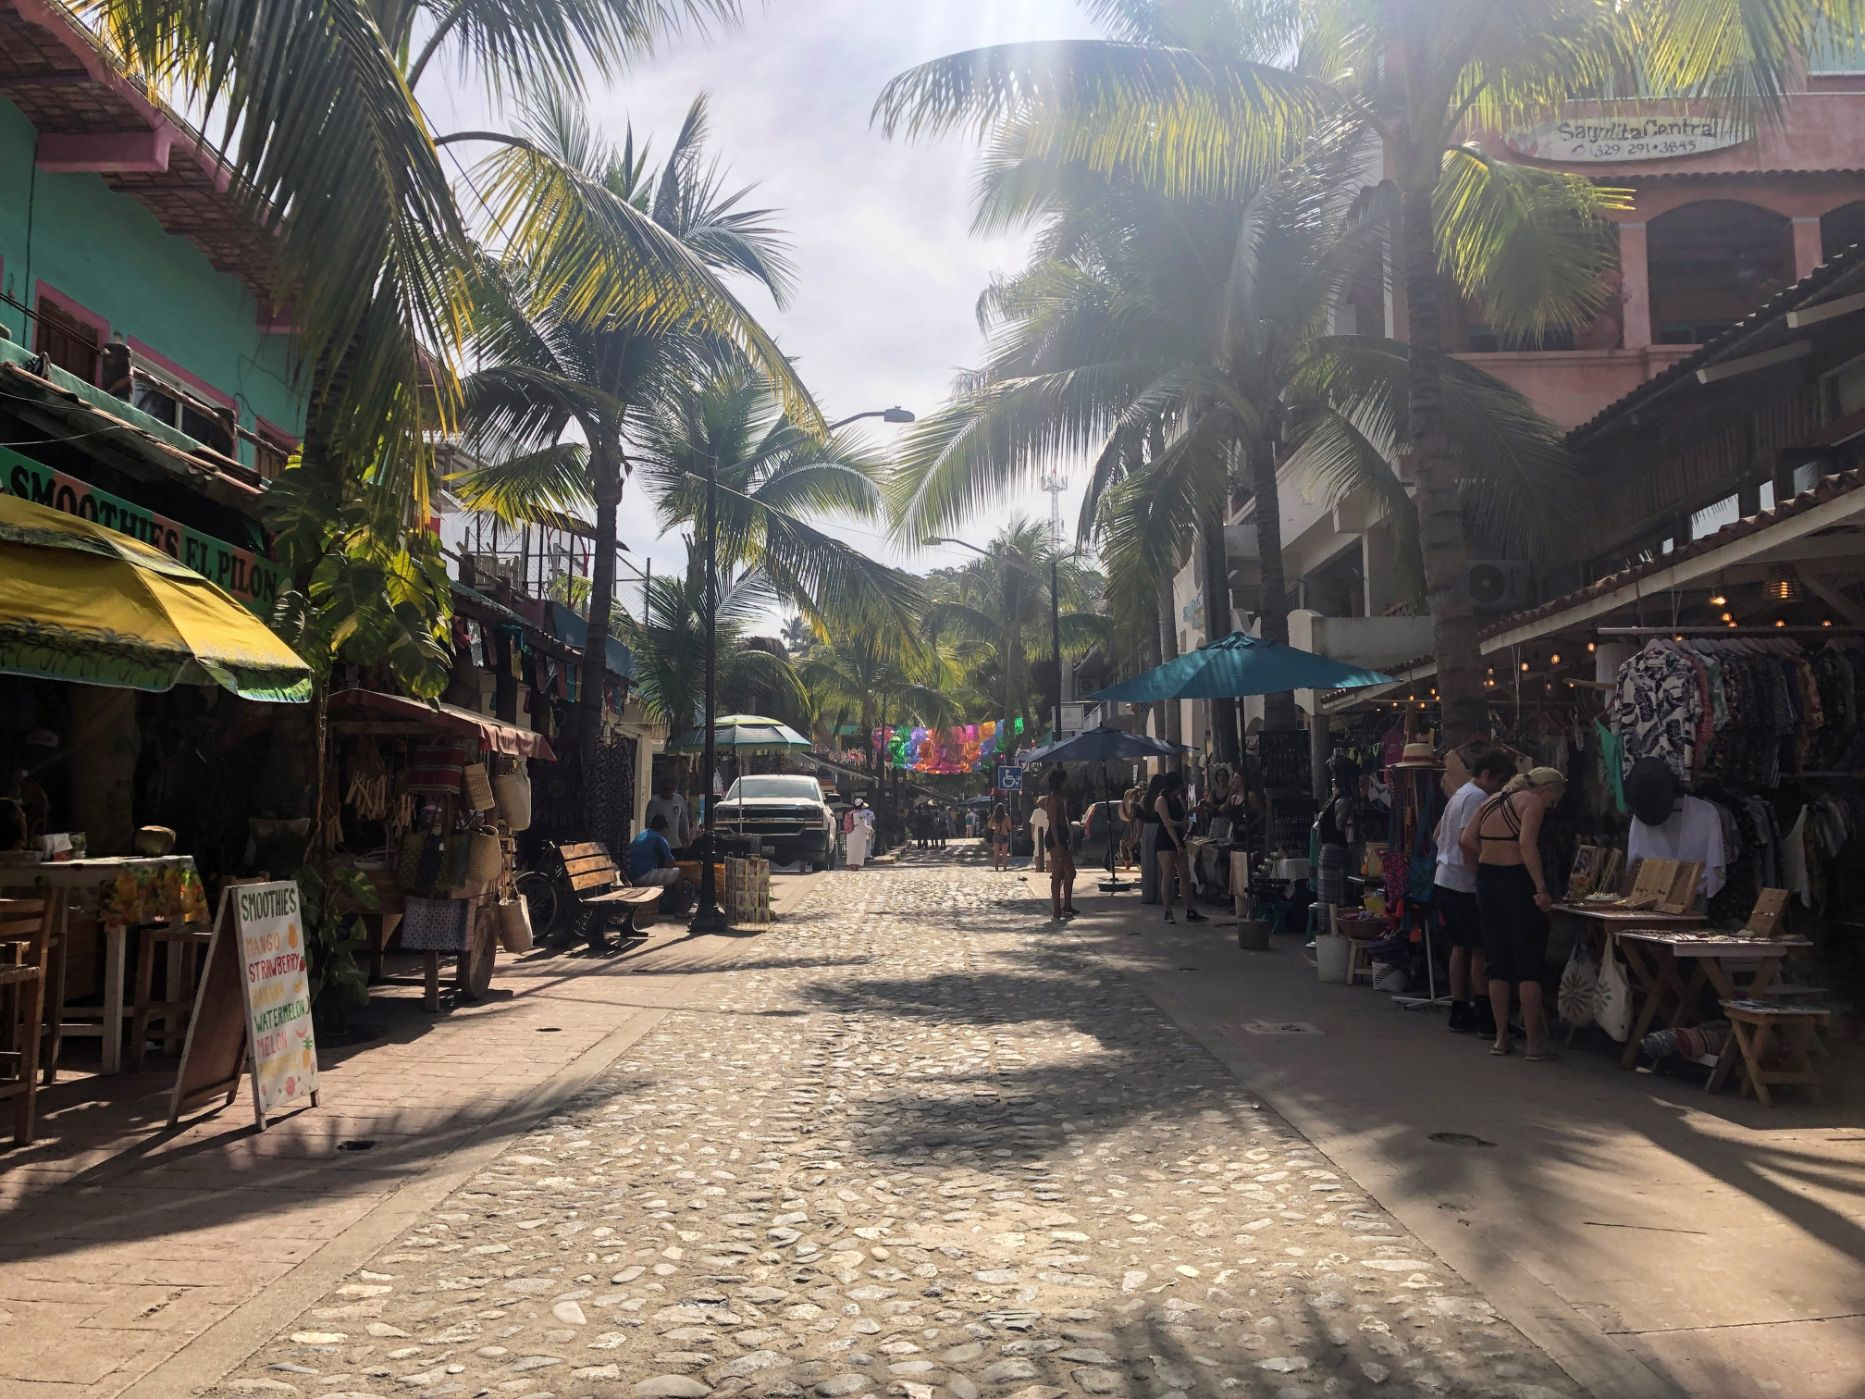 palm trees and boutique shops lining the streets in Sayulita